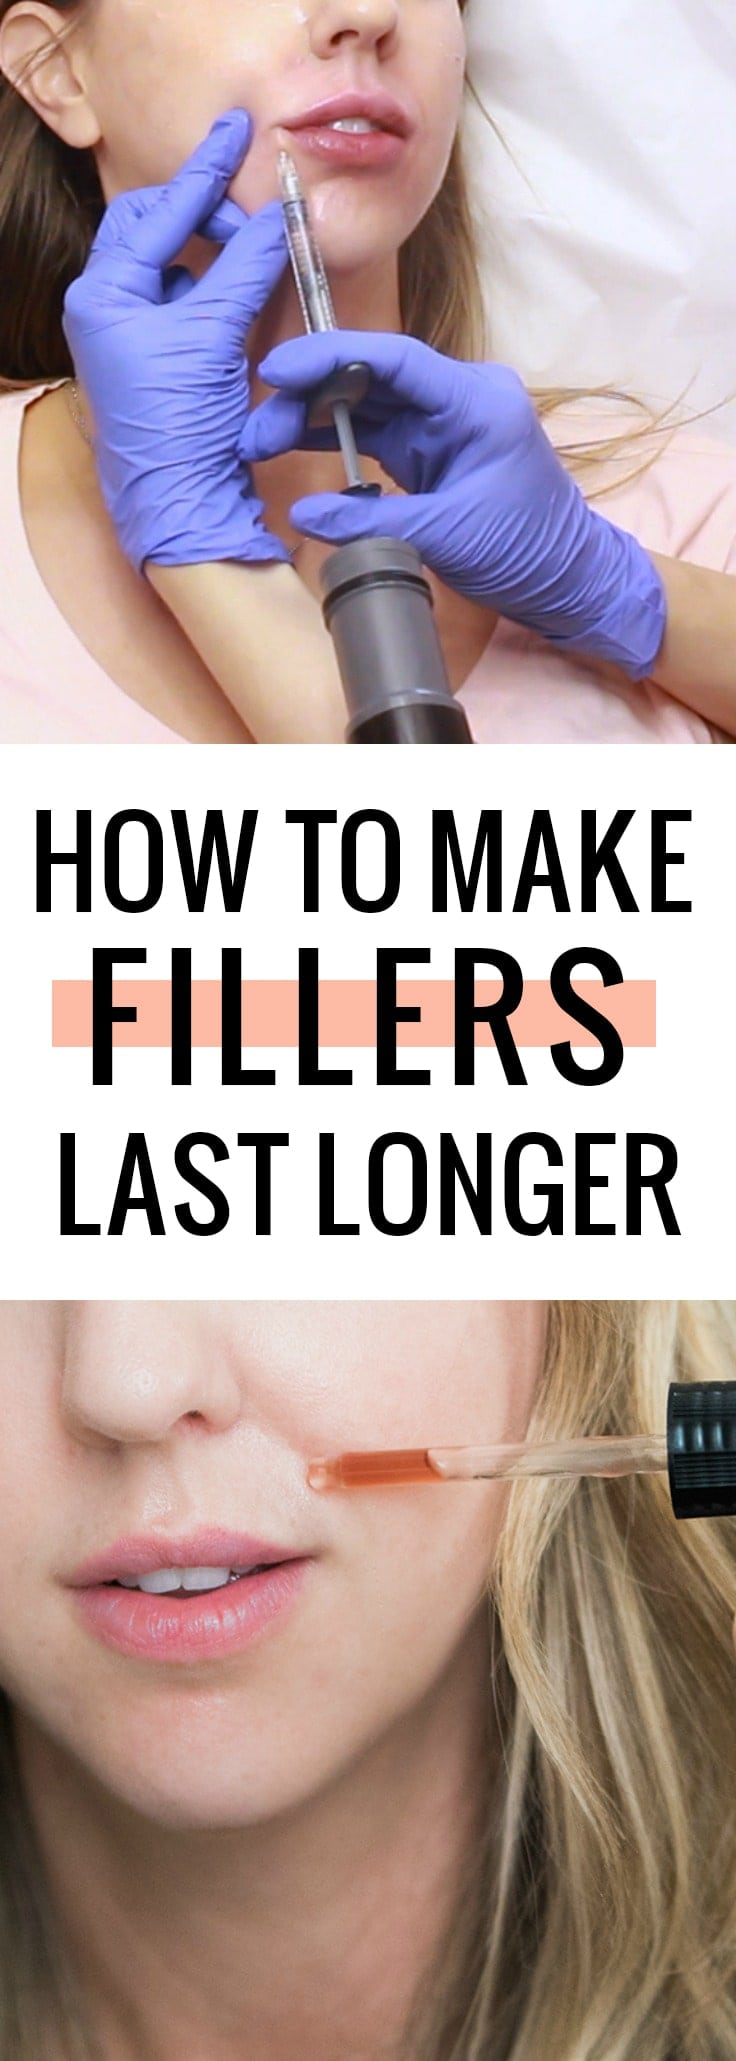 How to make fillers last longer - come see how I maintain my fillers!